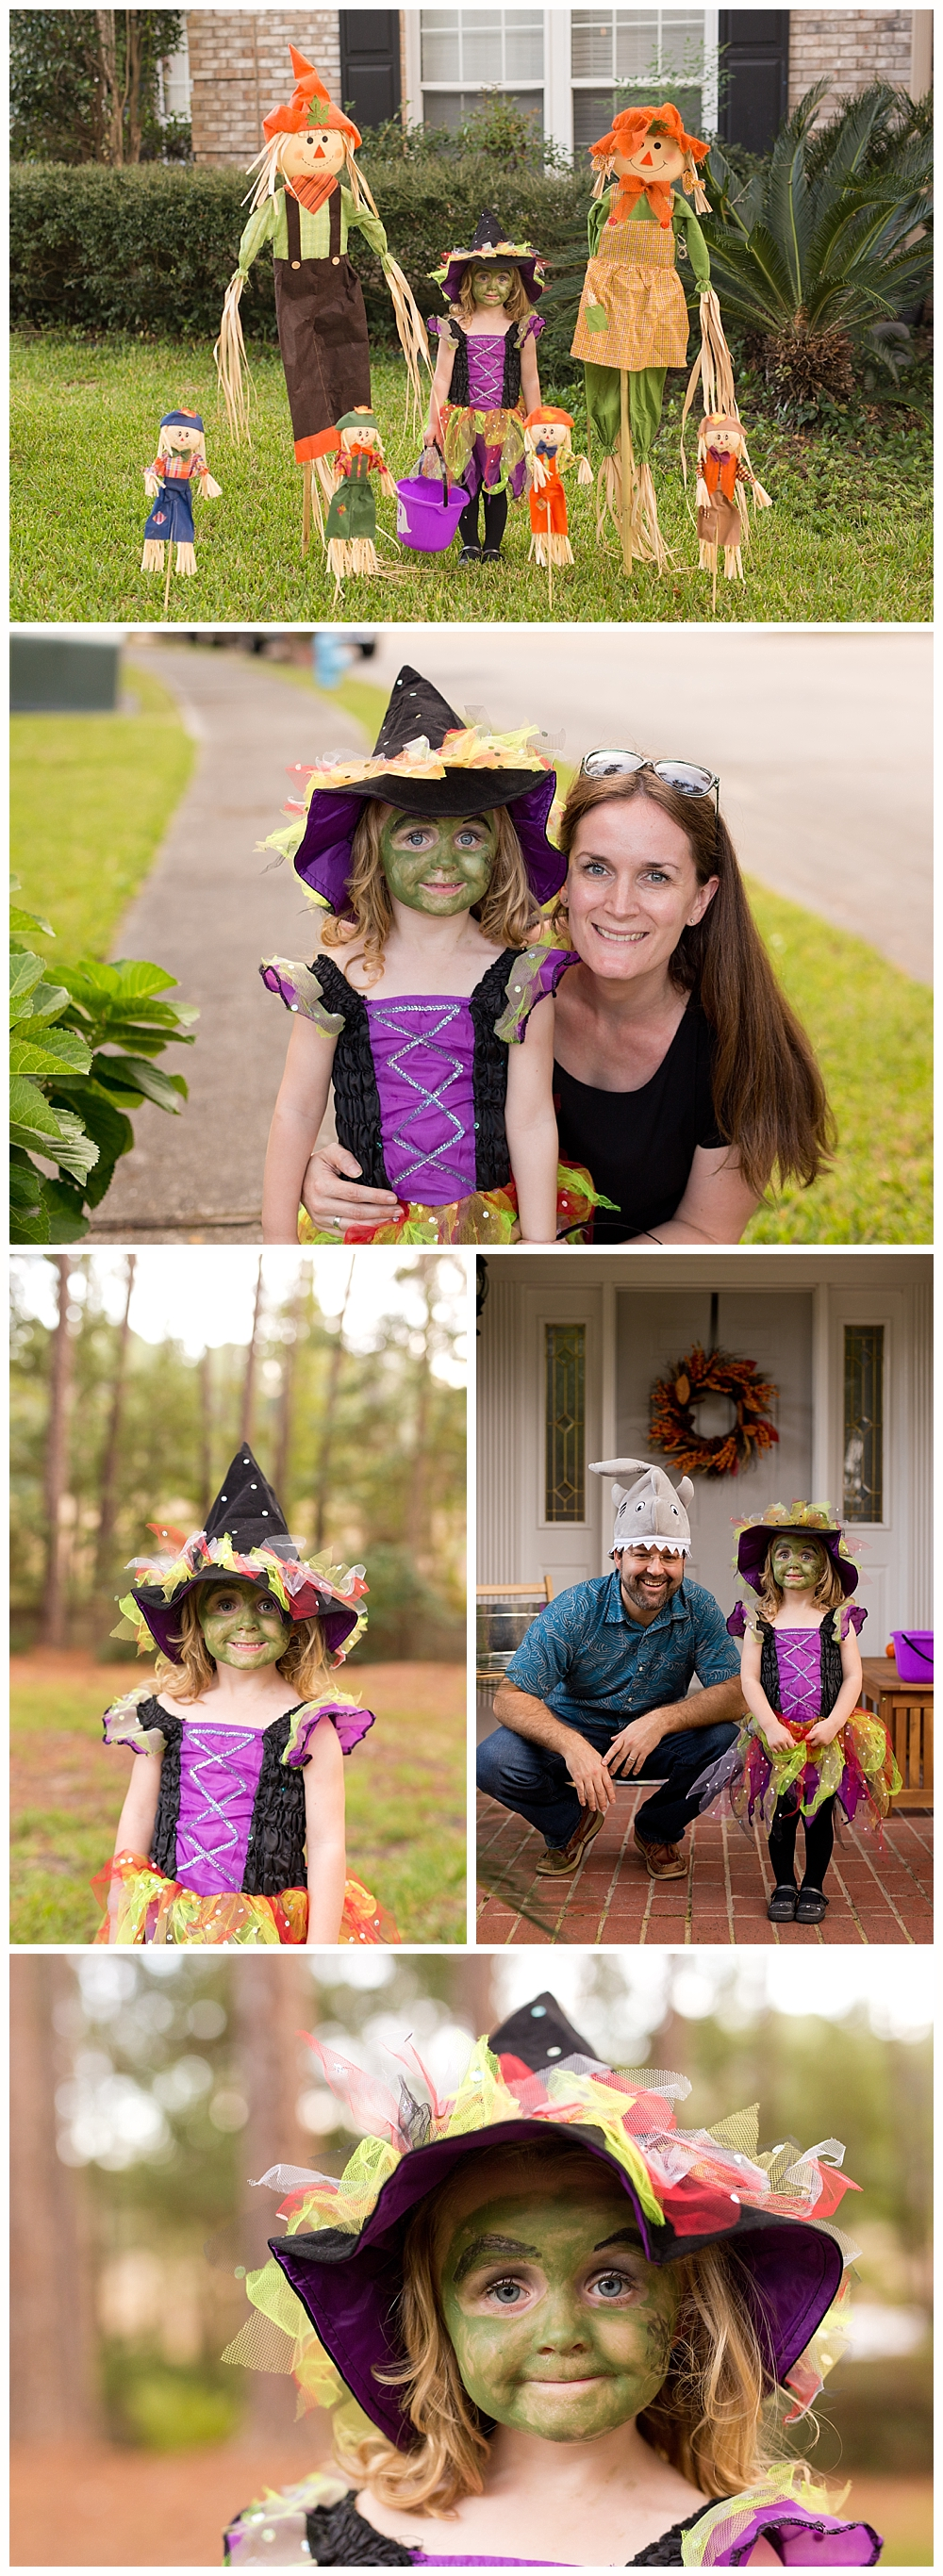 three-year-old girl in witch costume for trick-or-treating - Halloween in Bienville Place, Ocean Springs, Mississippi